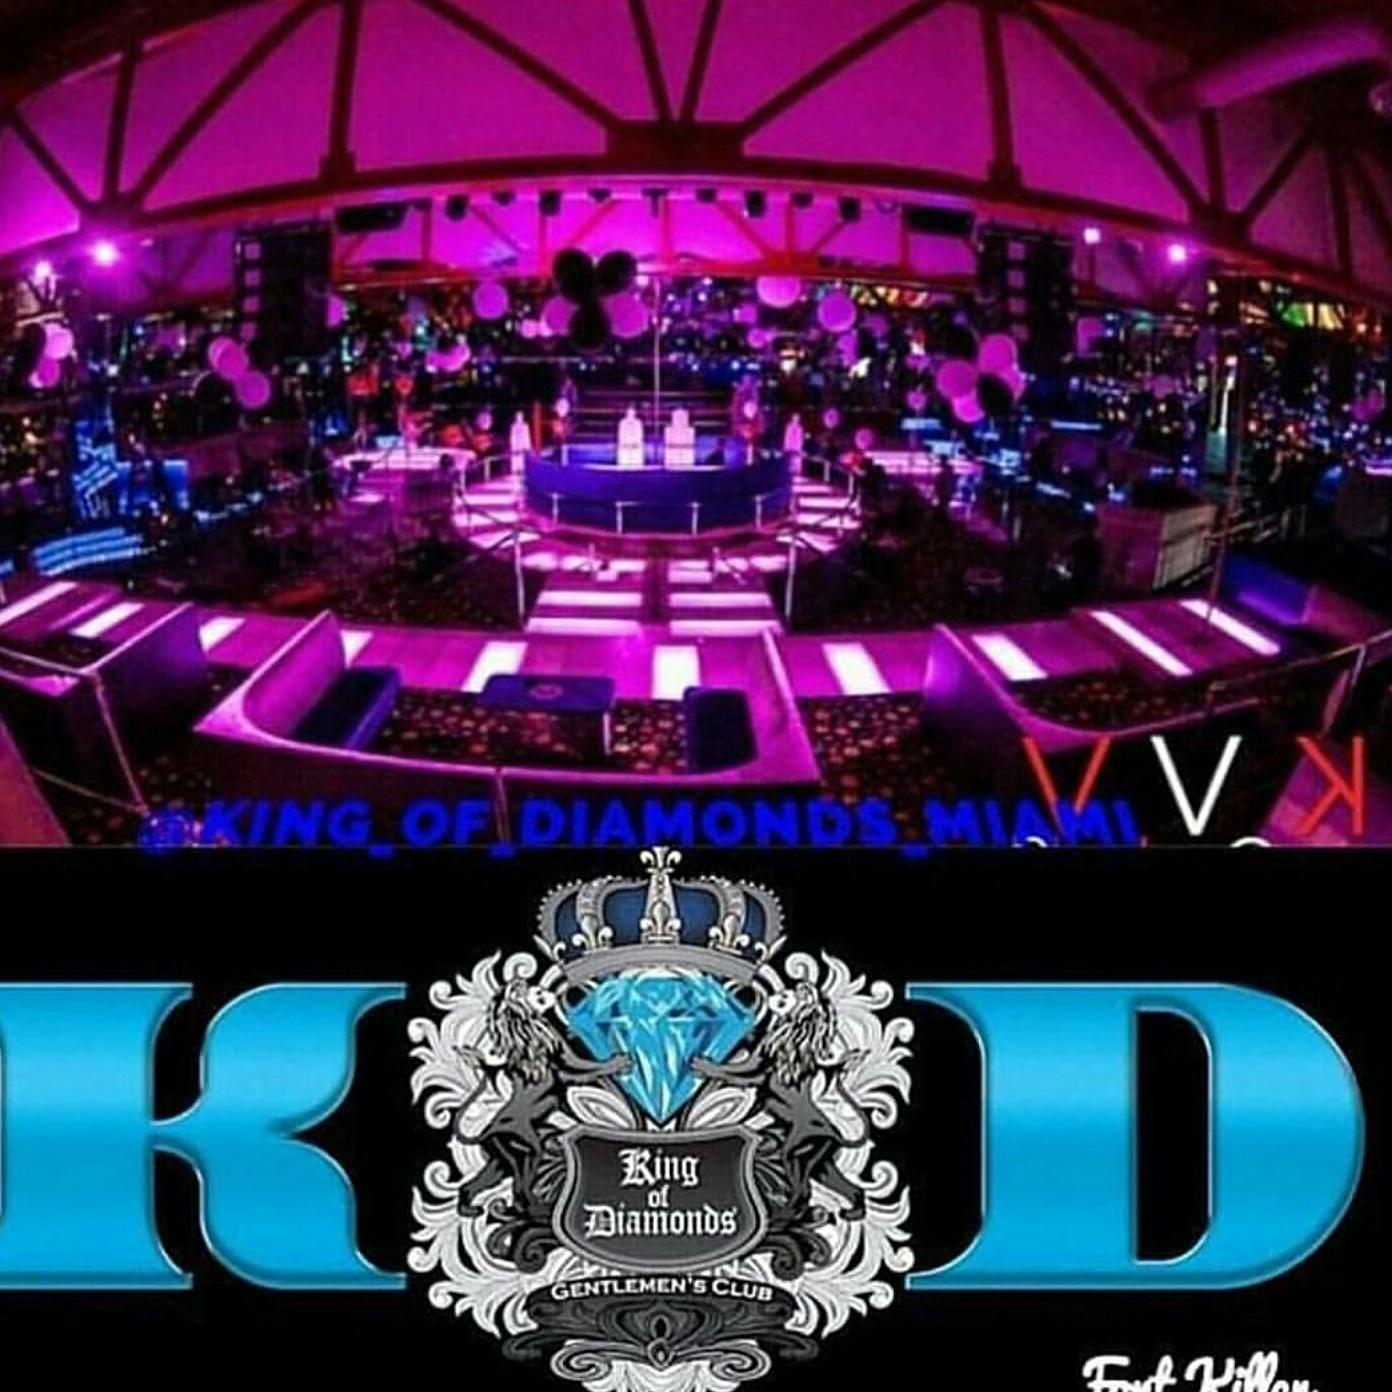 KING OF DIAMONDS PARTY PACKAGE DRINKS & ROUND